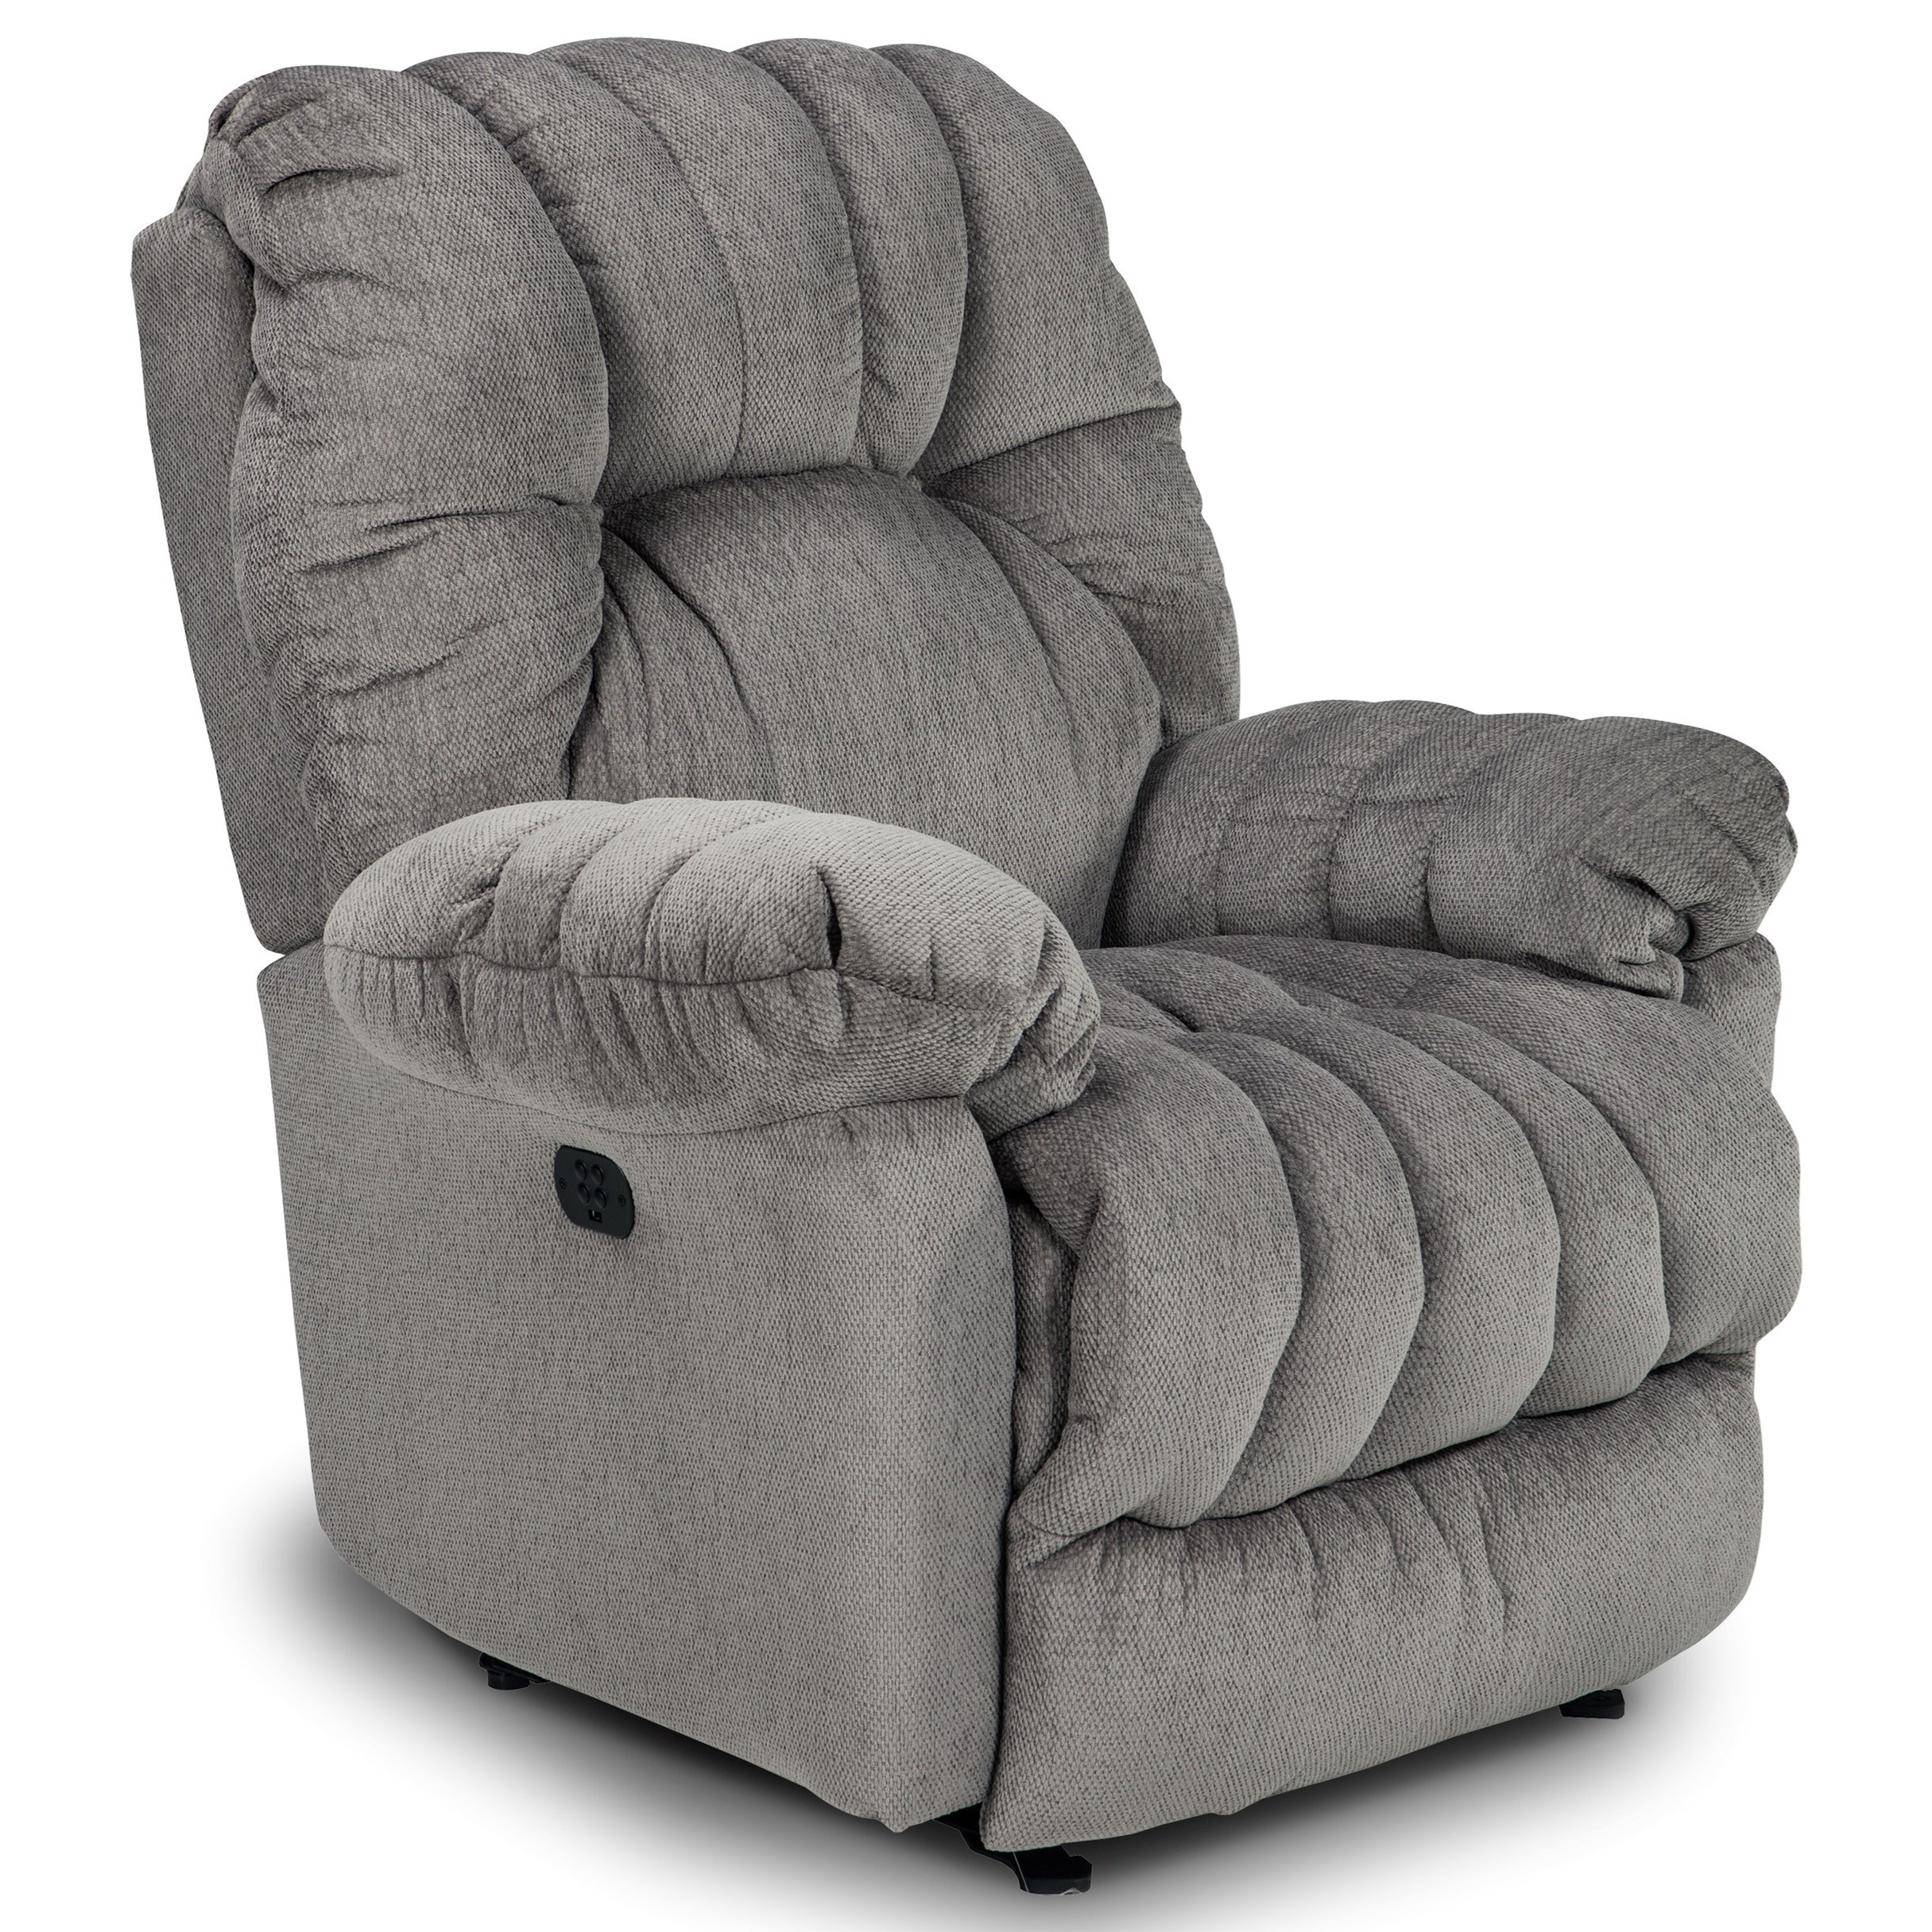 Conen Power Rocker Recliner w/ Pwr Head by Best Home Furnishings at Furniture Superstore - Rochester, MN